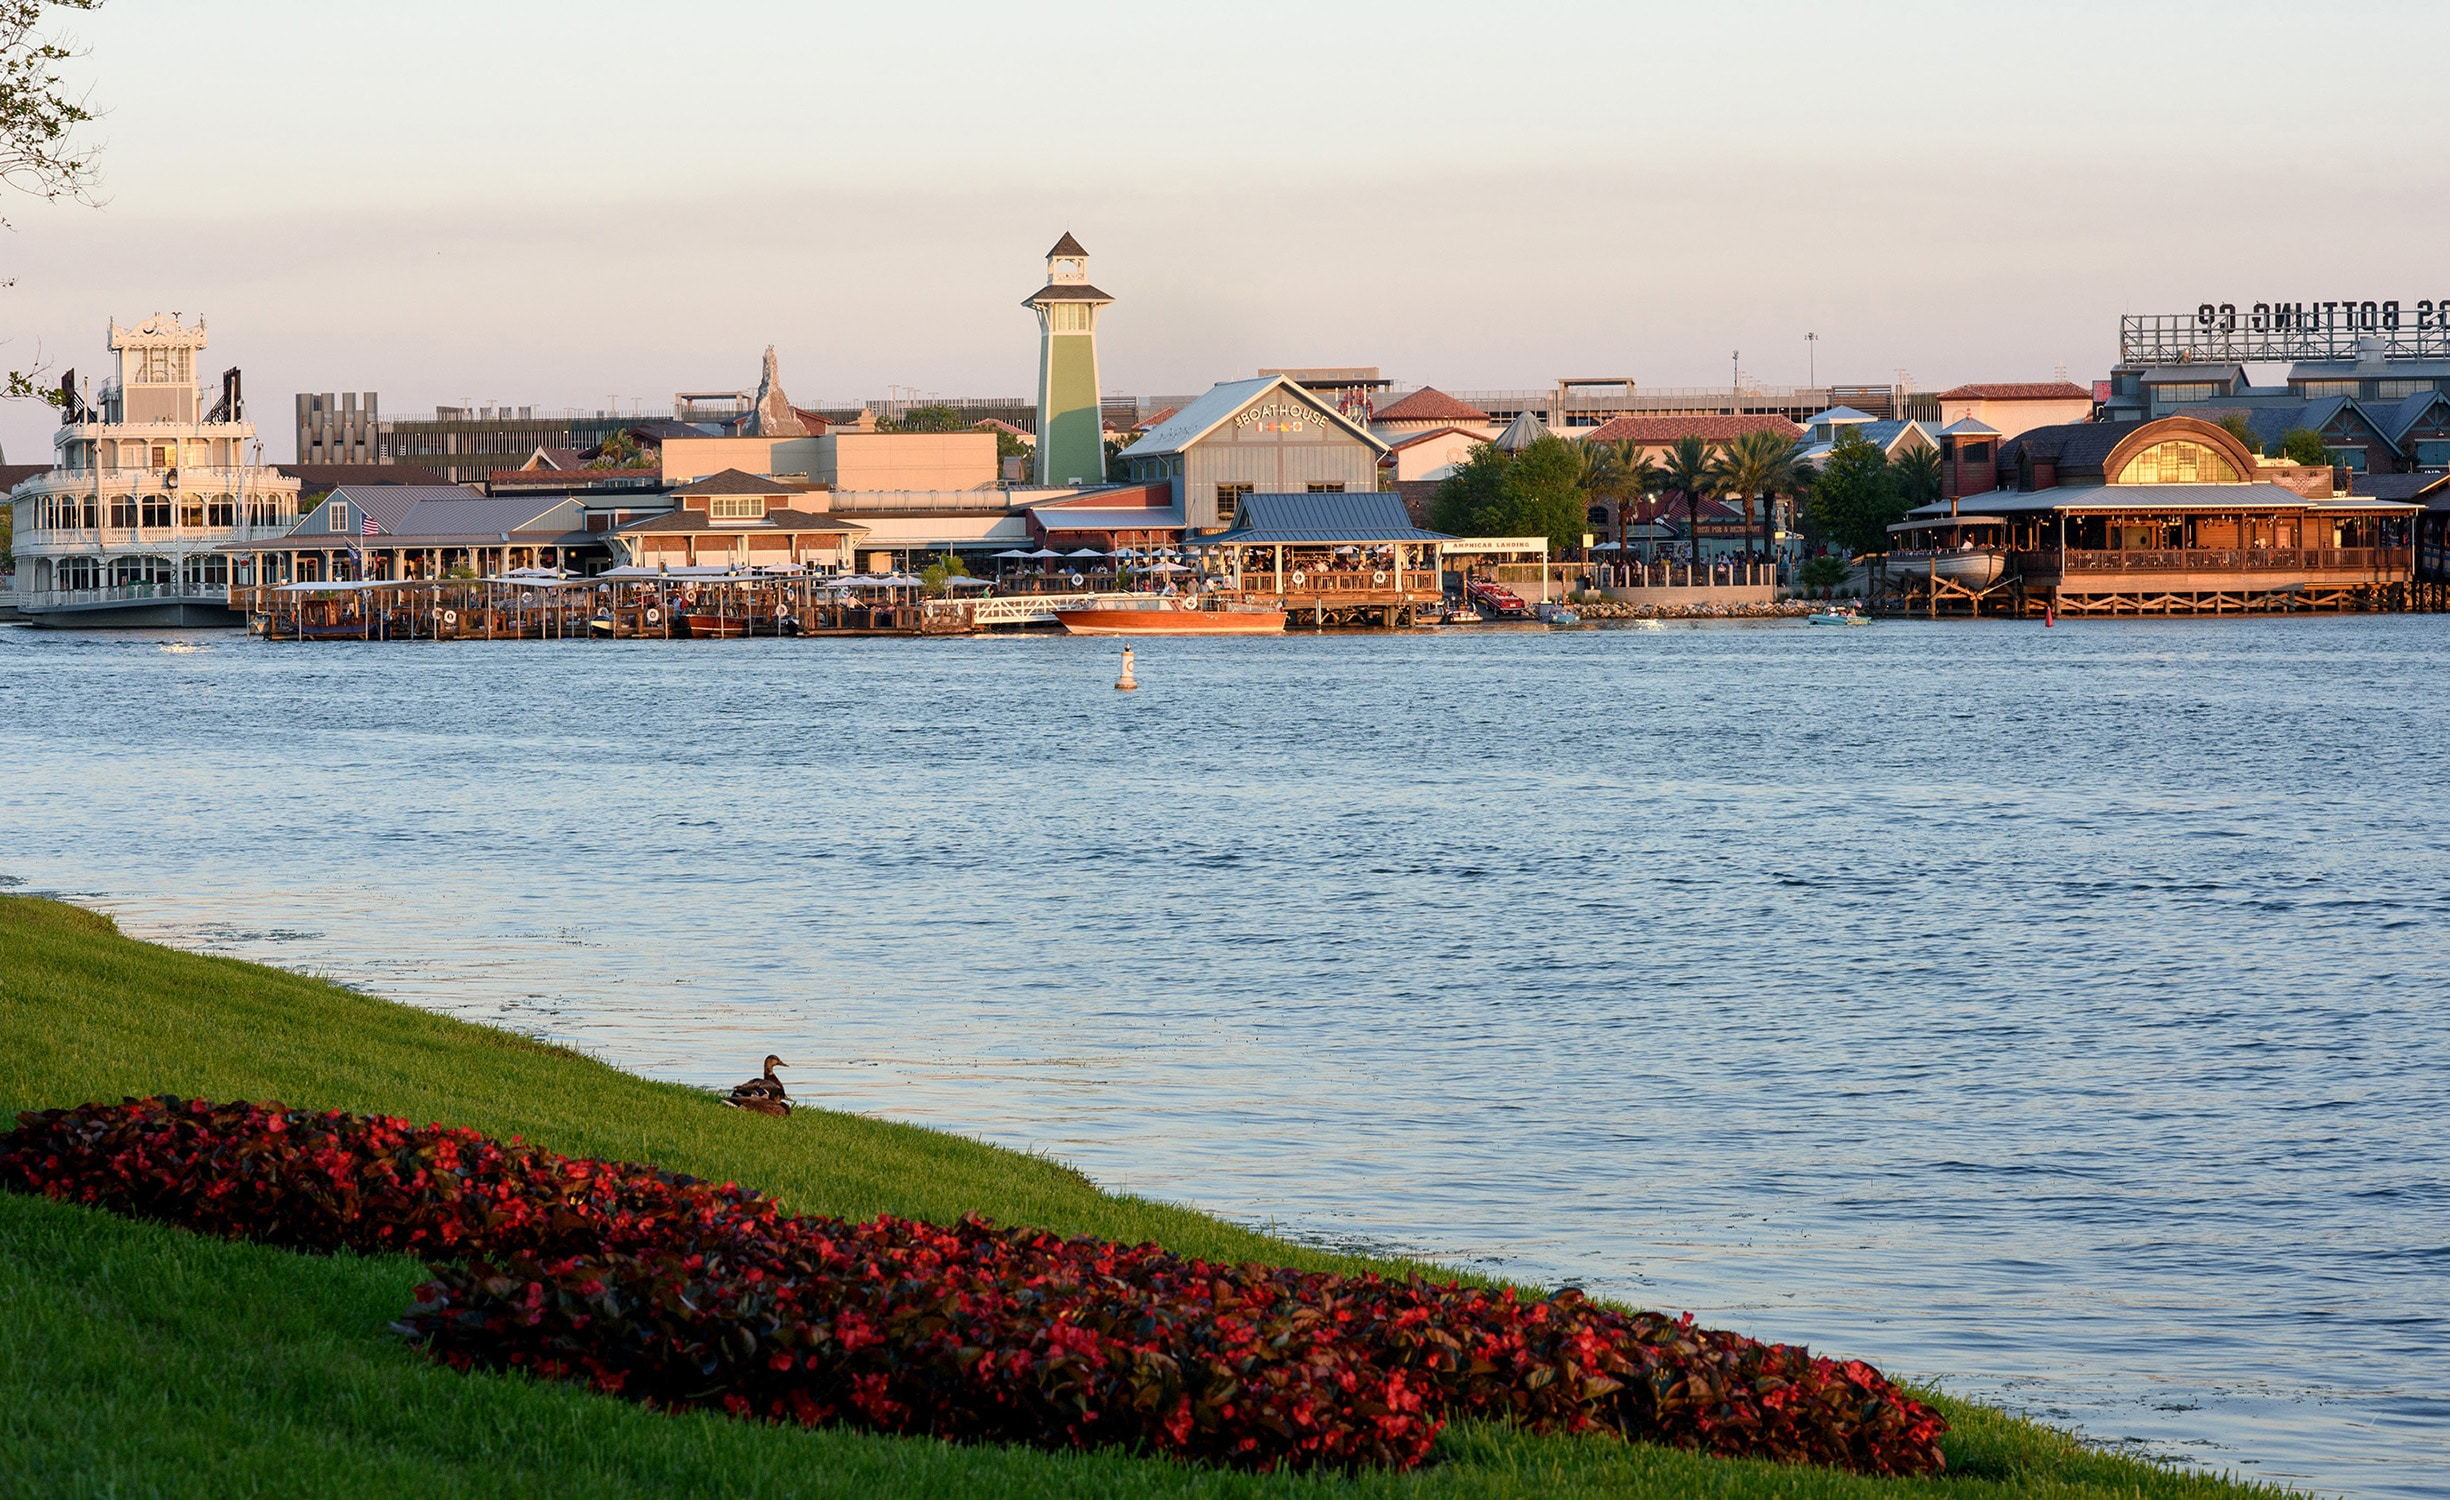 What's new at Disney Springs? Well, Check this out to see more of the awesome and amazing getaway vacation destination with your loved ones. Get to see more of the newest attractions at Disney Springs.